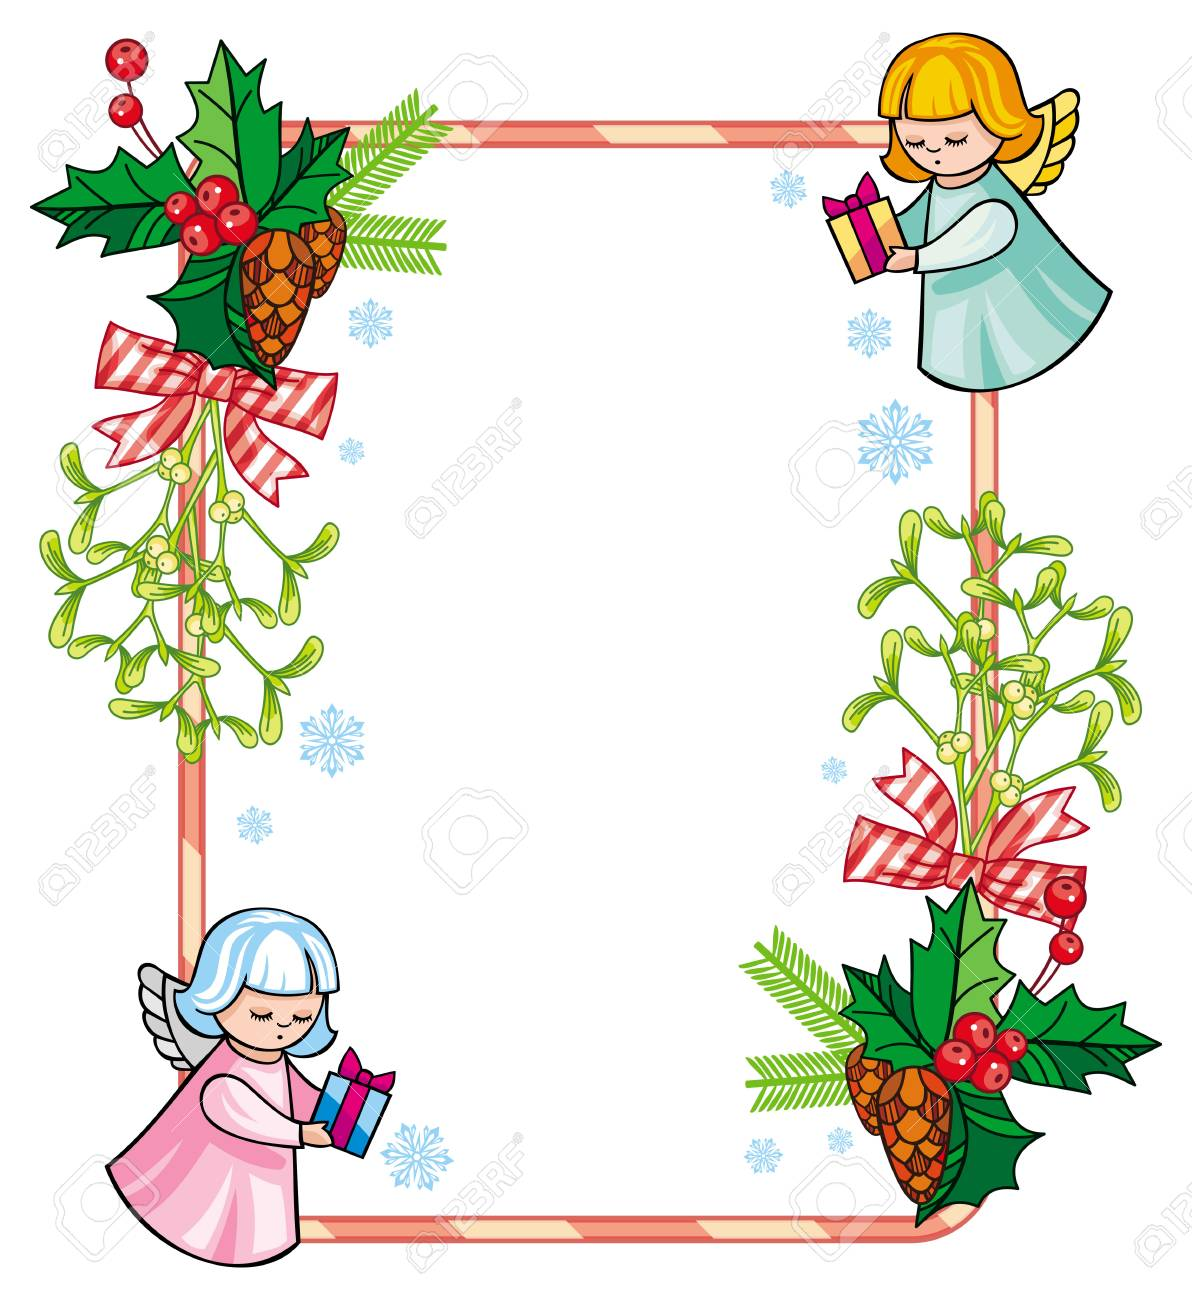 Christmas Holiday Clipart.Christmas Frame With Cute Angels Copy Space Christmas Holiday